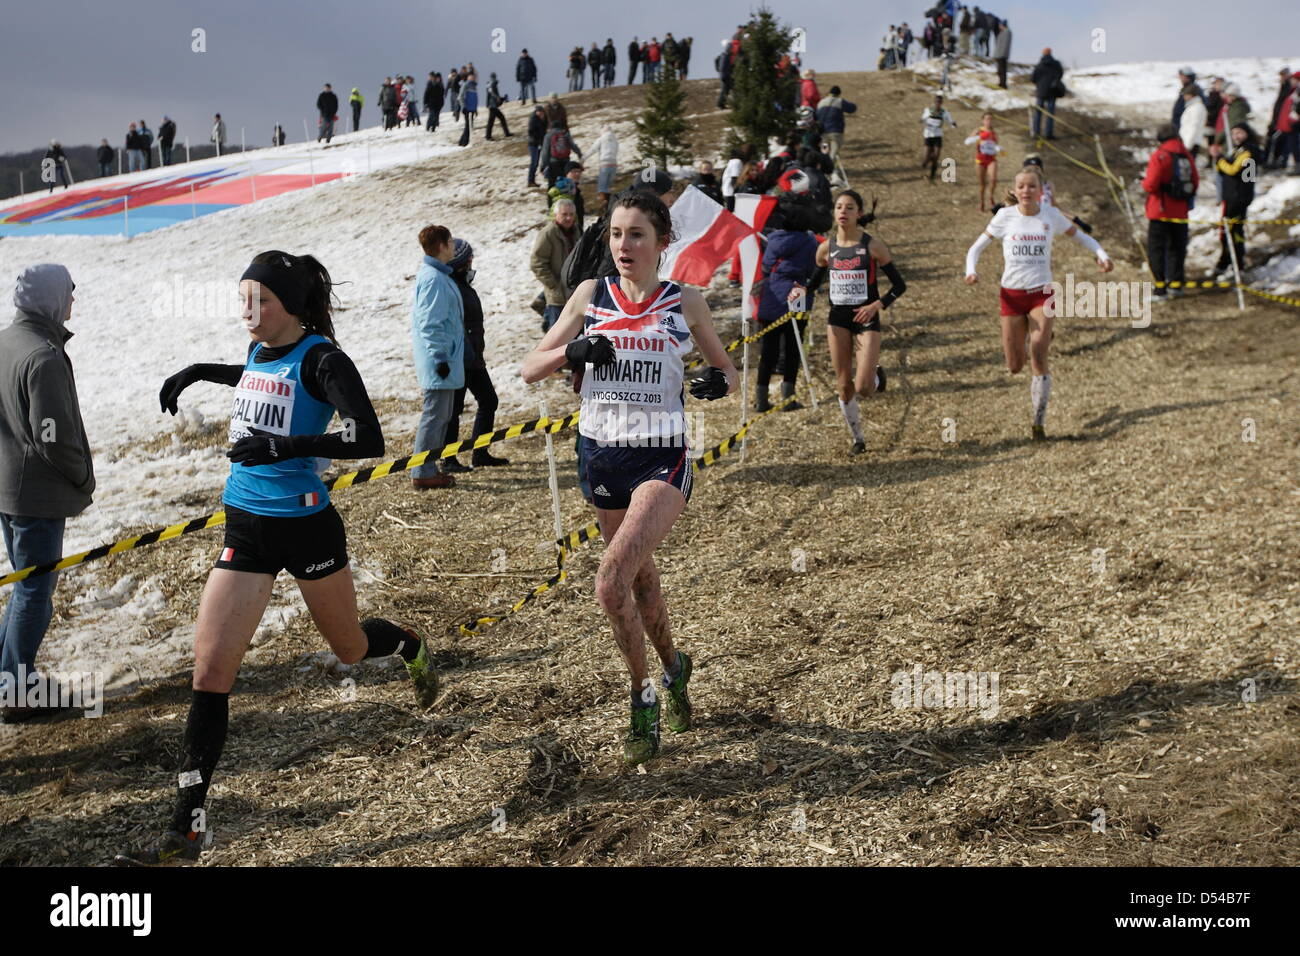 Bydgoszcz, Poland 24th, March 2013 IAAF World Cross Country Chamiponships. Senior Race Woman.  Pictured: Lauren - Stock Image